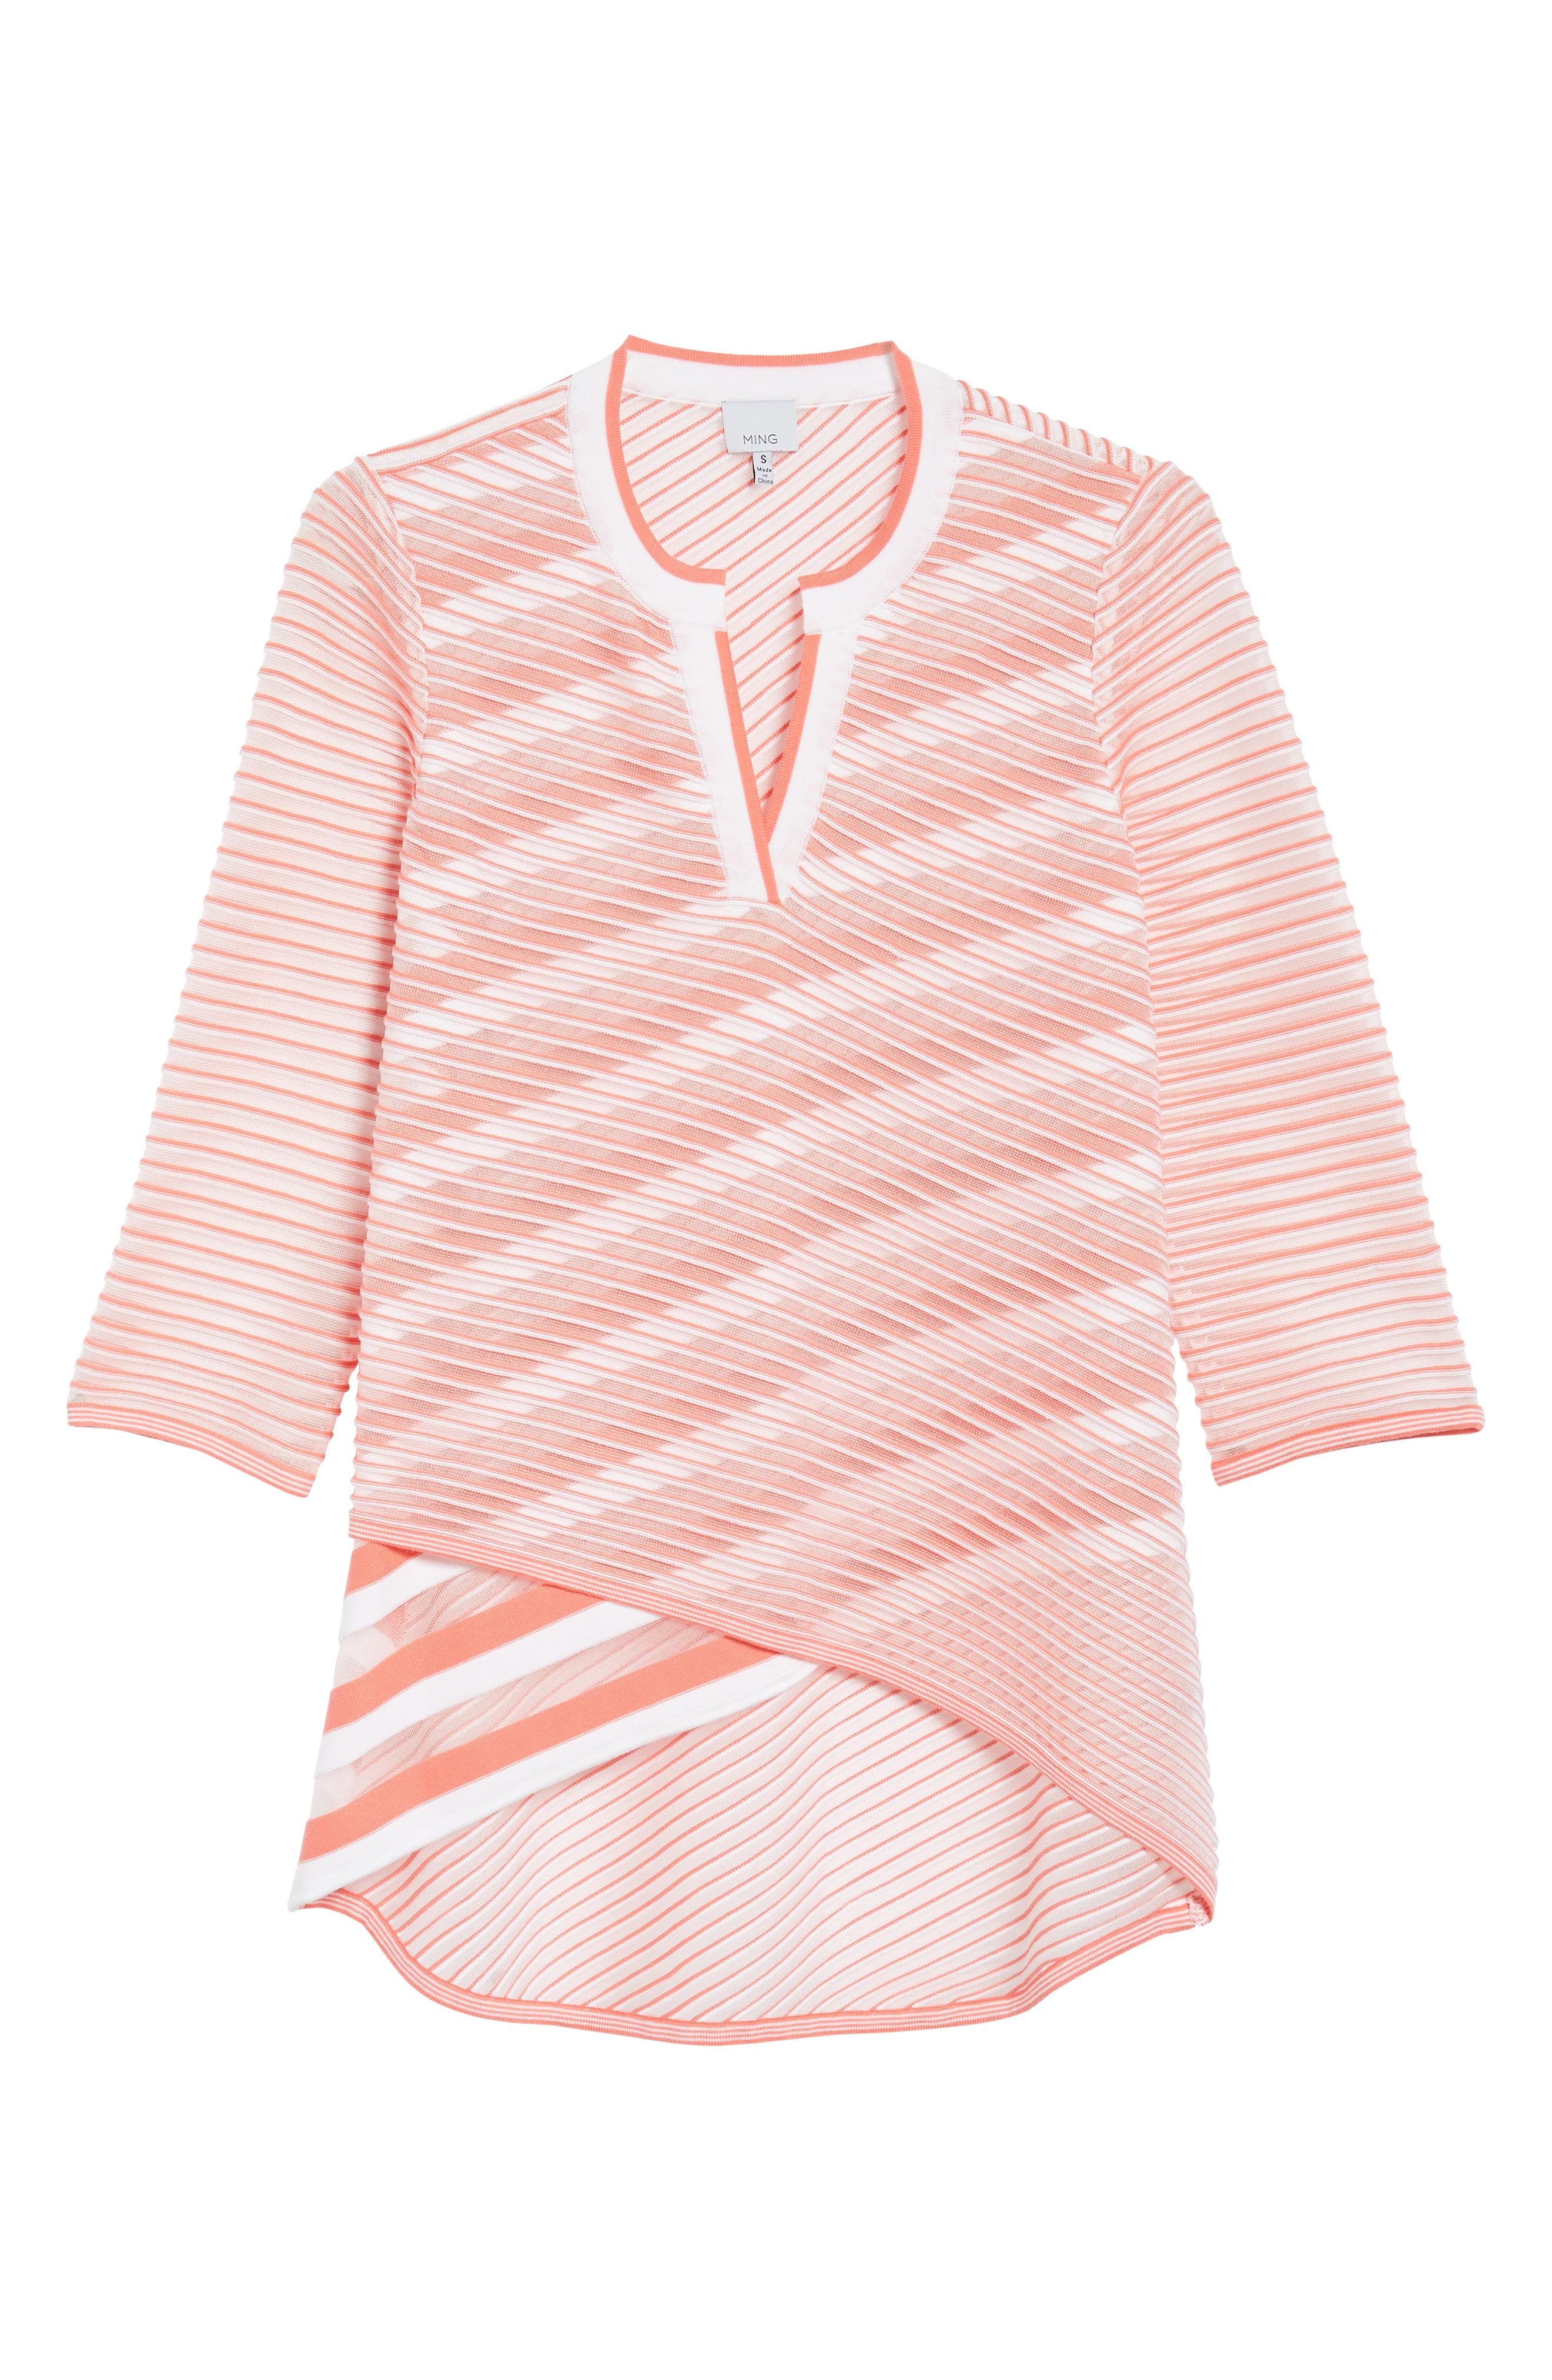 Sheer Stripe Knit Tunic,                             Alternate thumbnail 6, color,                             DAYLILY/ WHITE